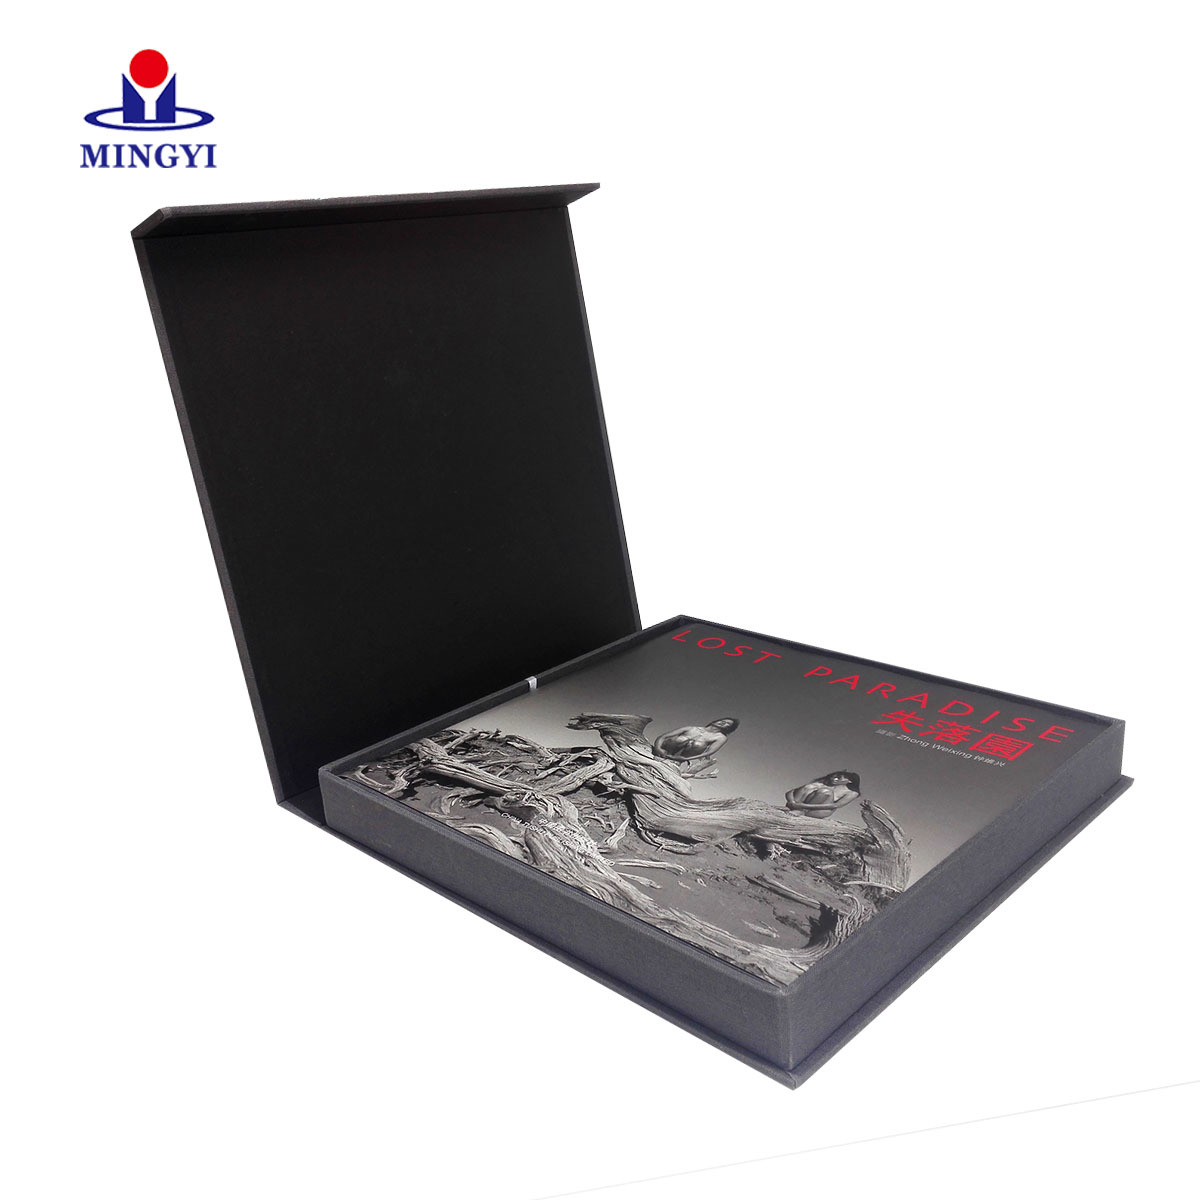 Luxury clamshell book brownies gift packaging box with ribbon use fancy paper